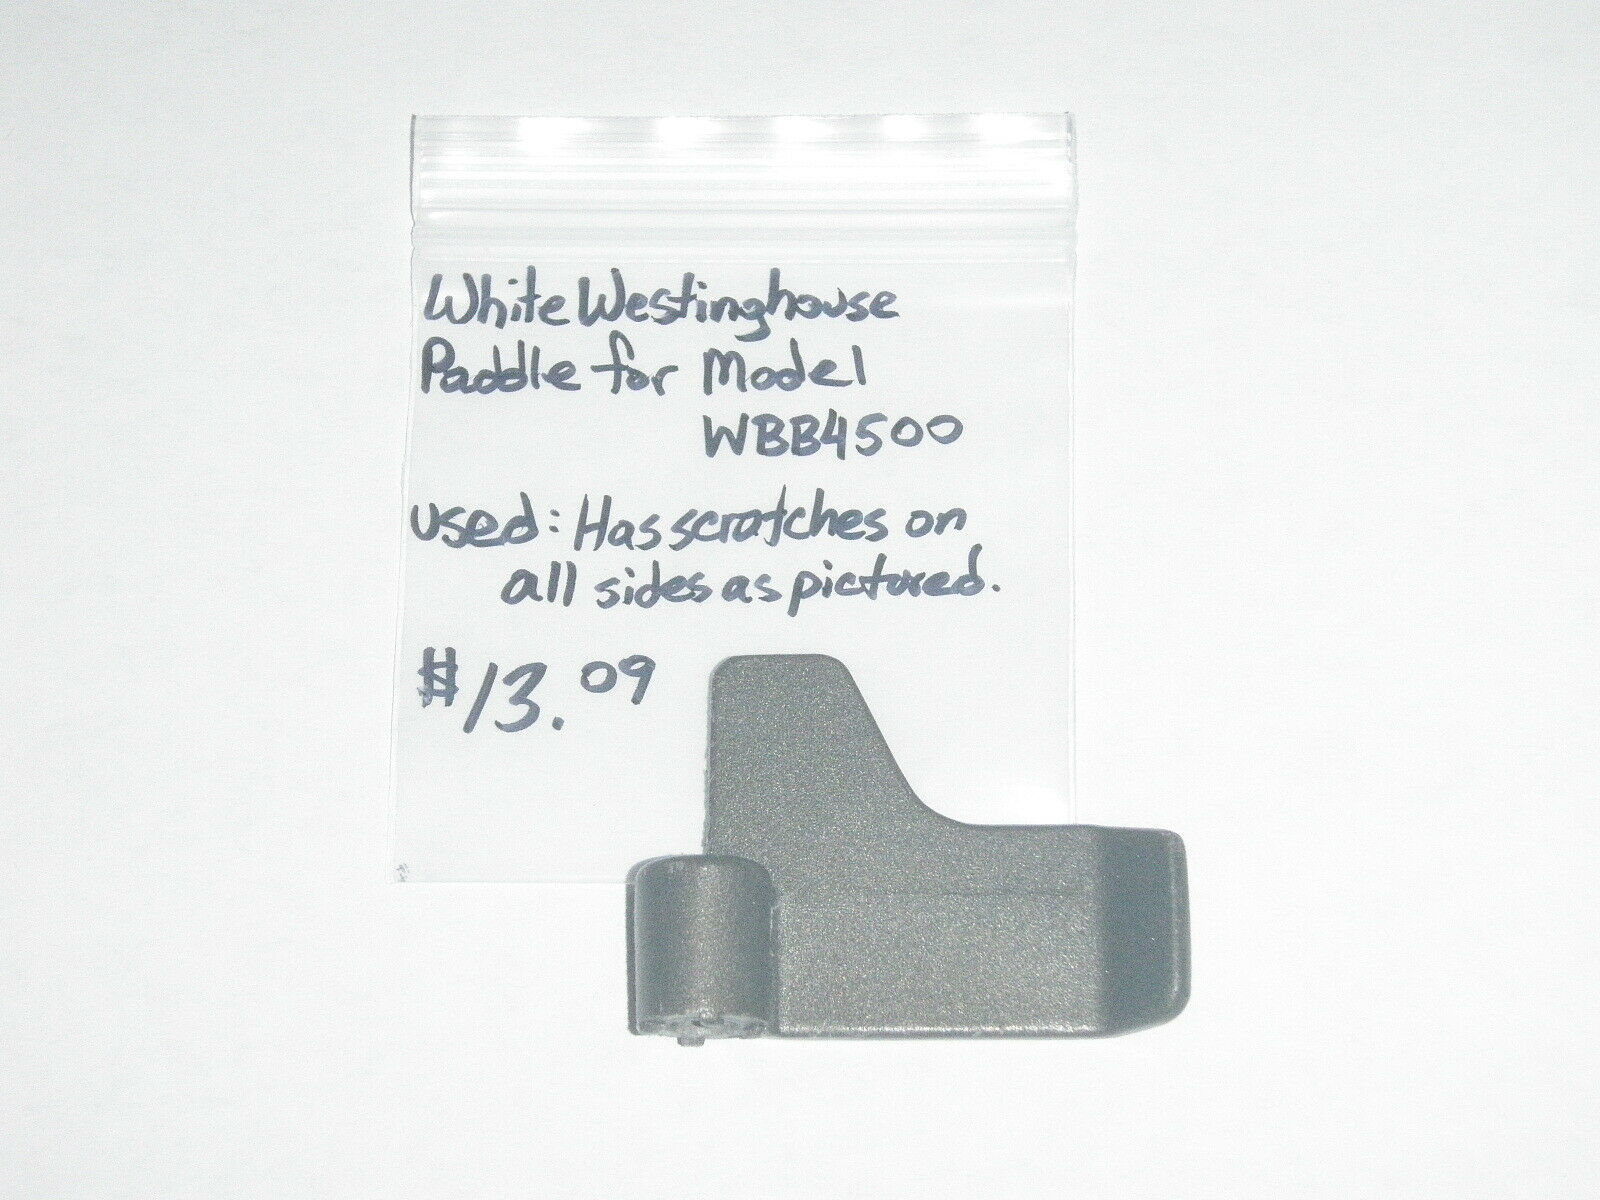 White Westinghouse Bread Maker OEM Paddle for Model WBB4500